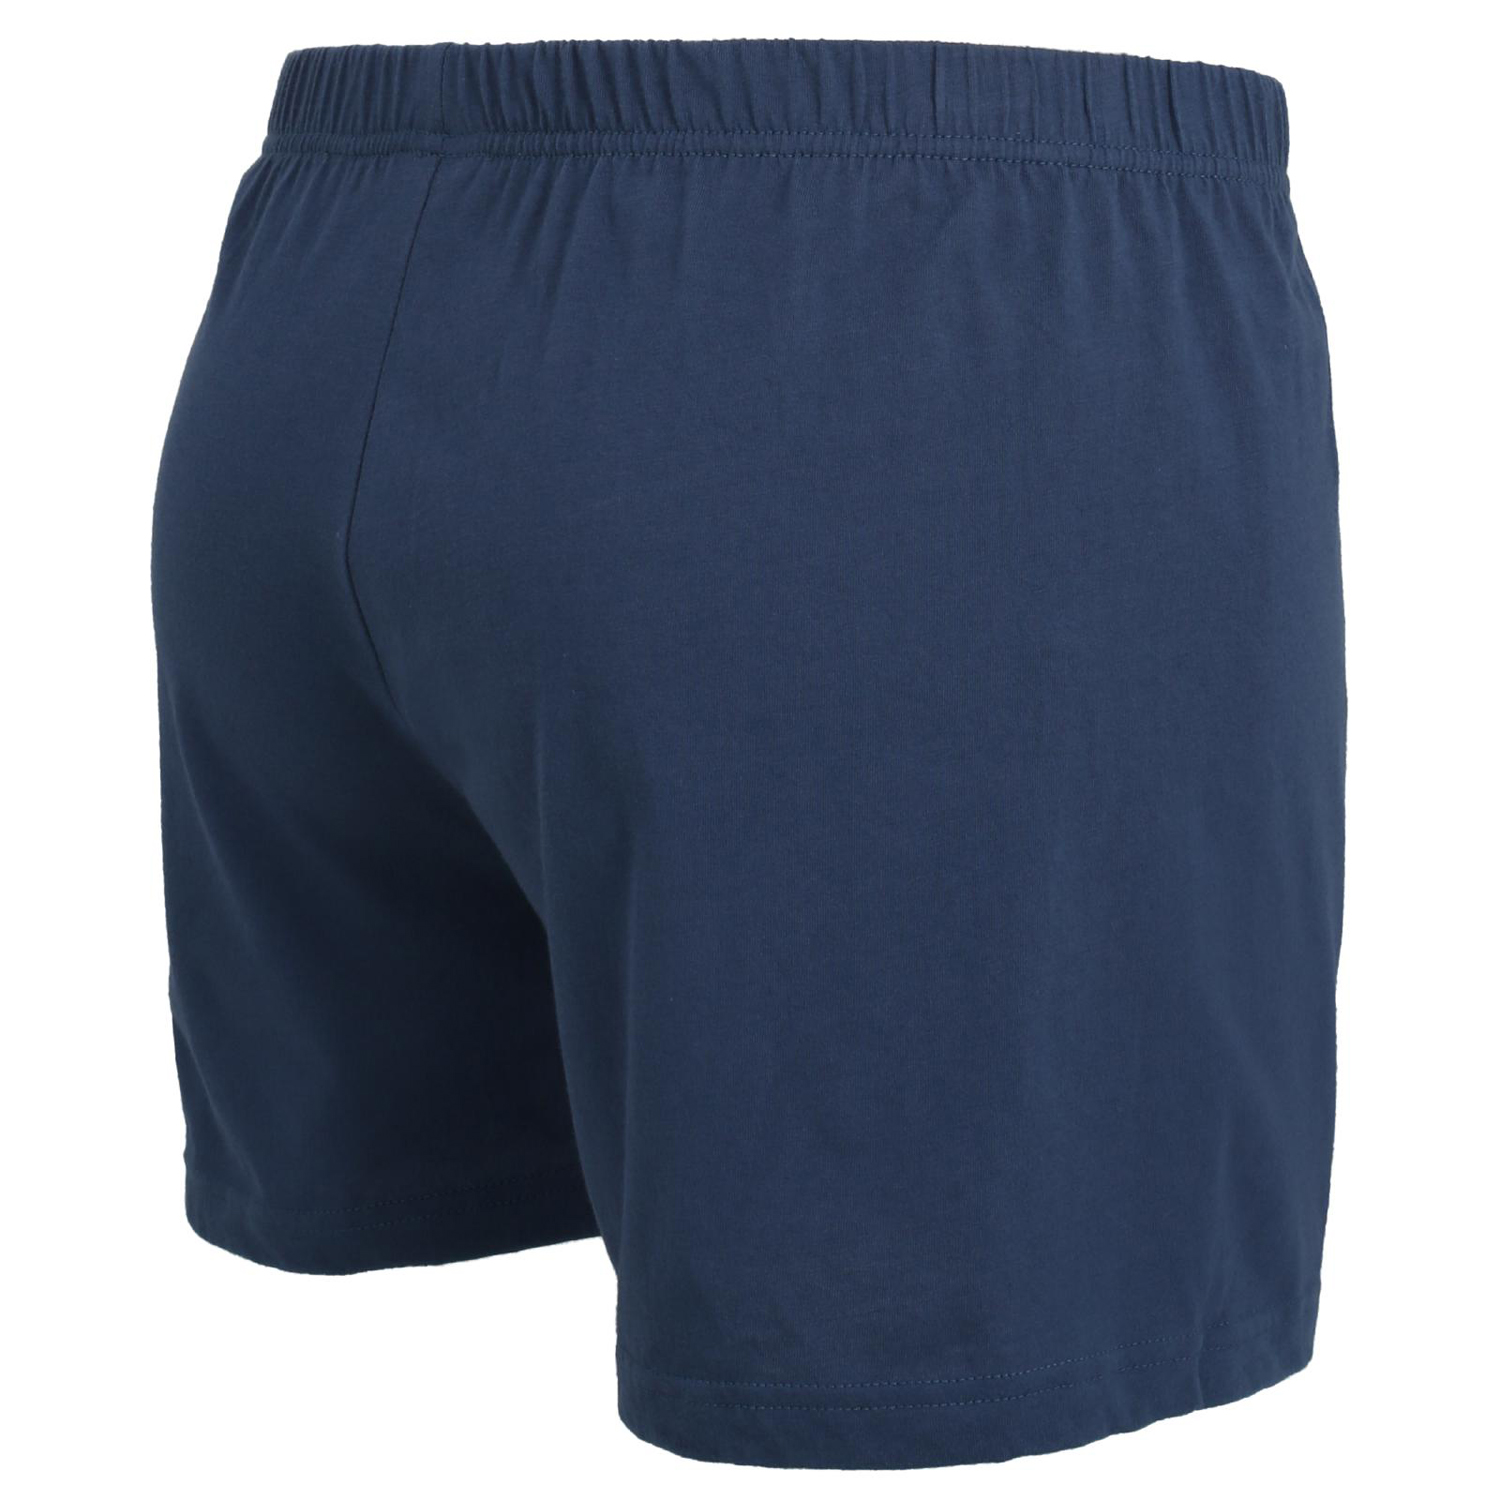 Detail Image to Boxershorts in blue by Ceceba up to oversize 18- double pack